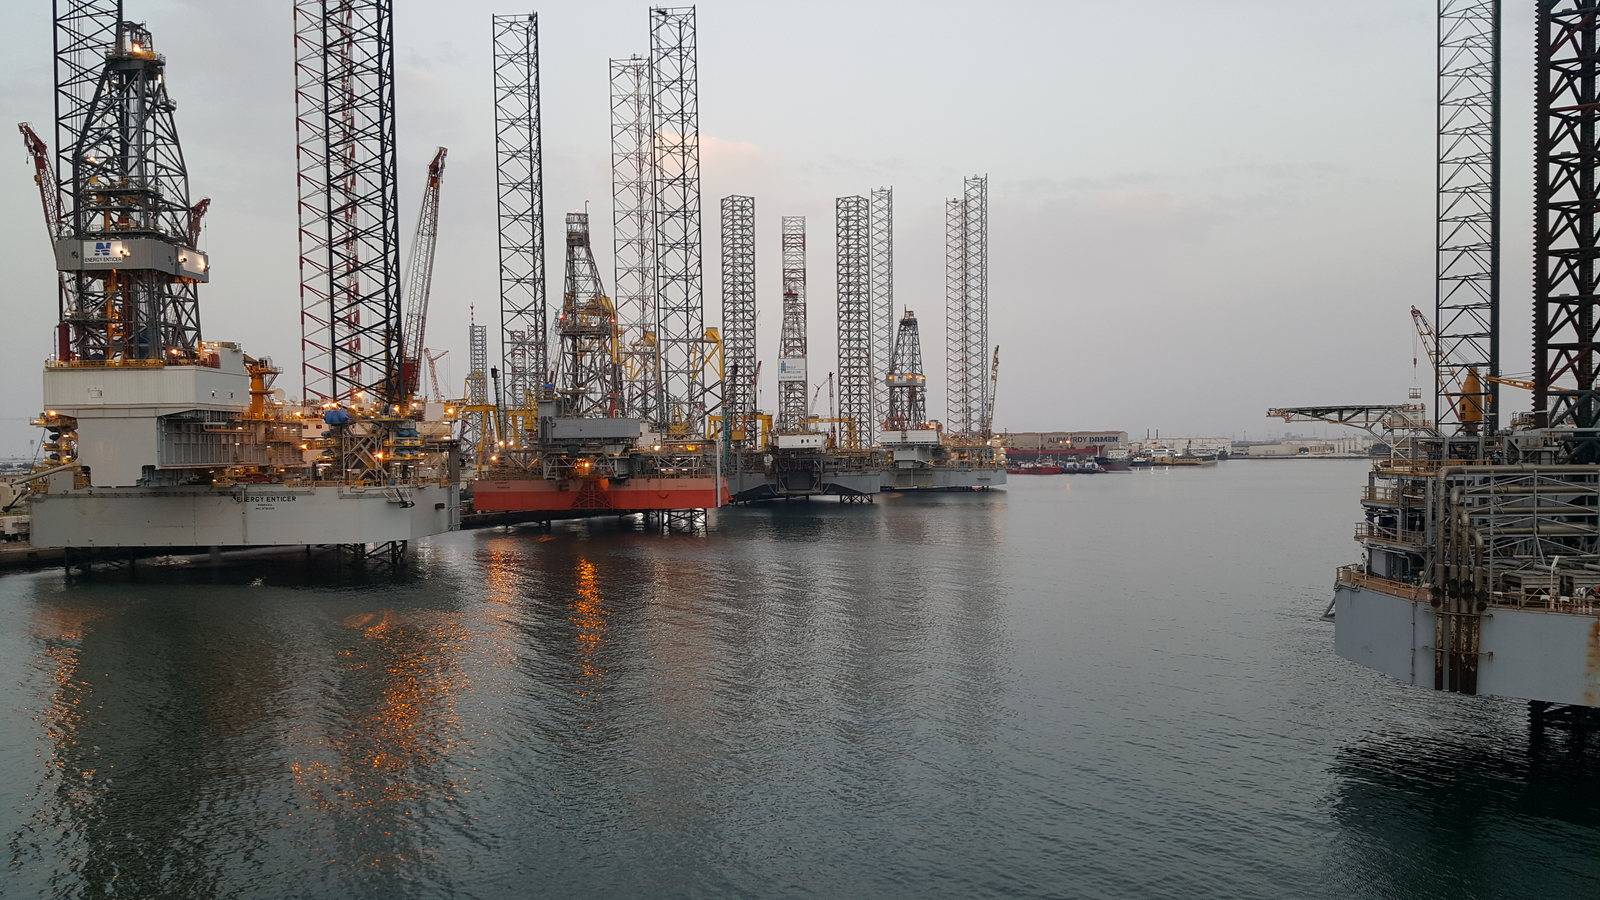 Energy Enticer and some other drilling rigs in Hamriyah Port